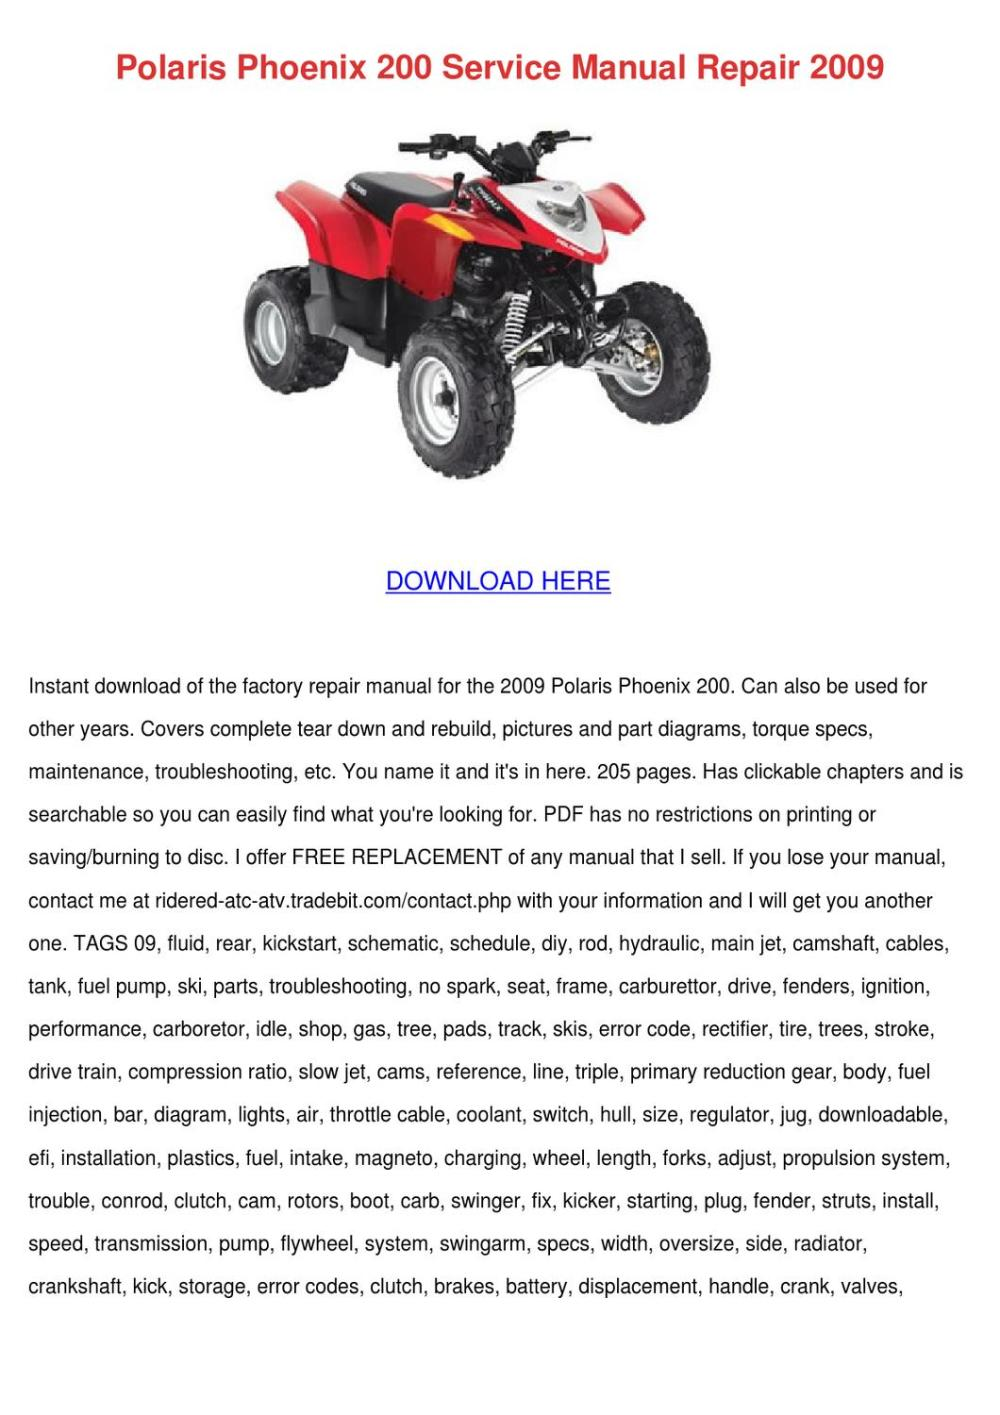 medium resolution of polaris phoenix 200 service manual repair 200 by ethelyn hrycenko issuu